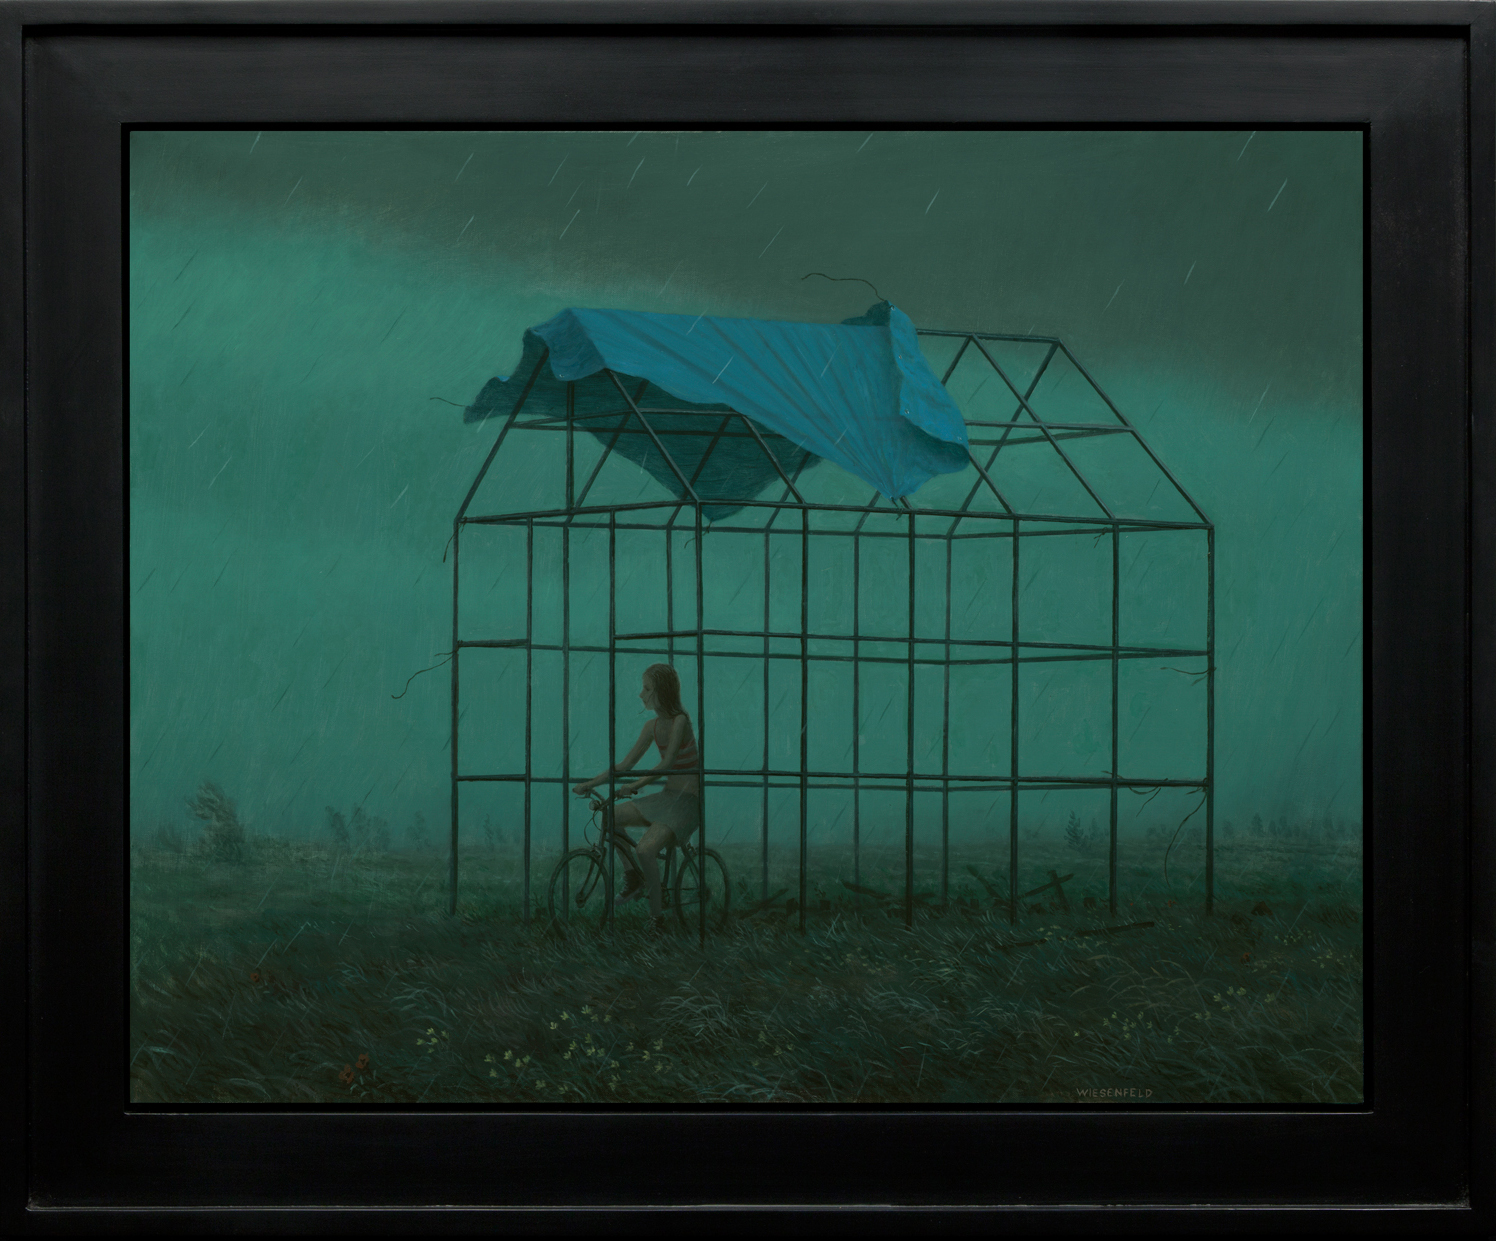 Aron-Wiesenfeld-The-Off-Season